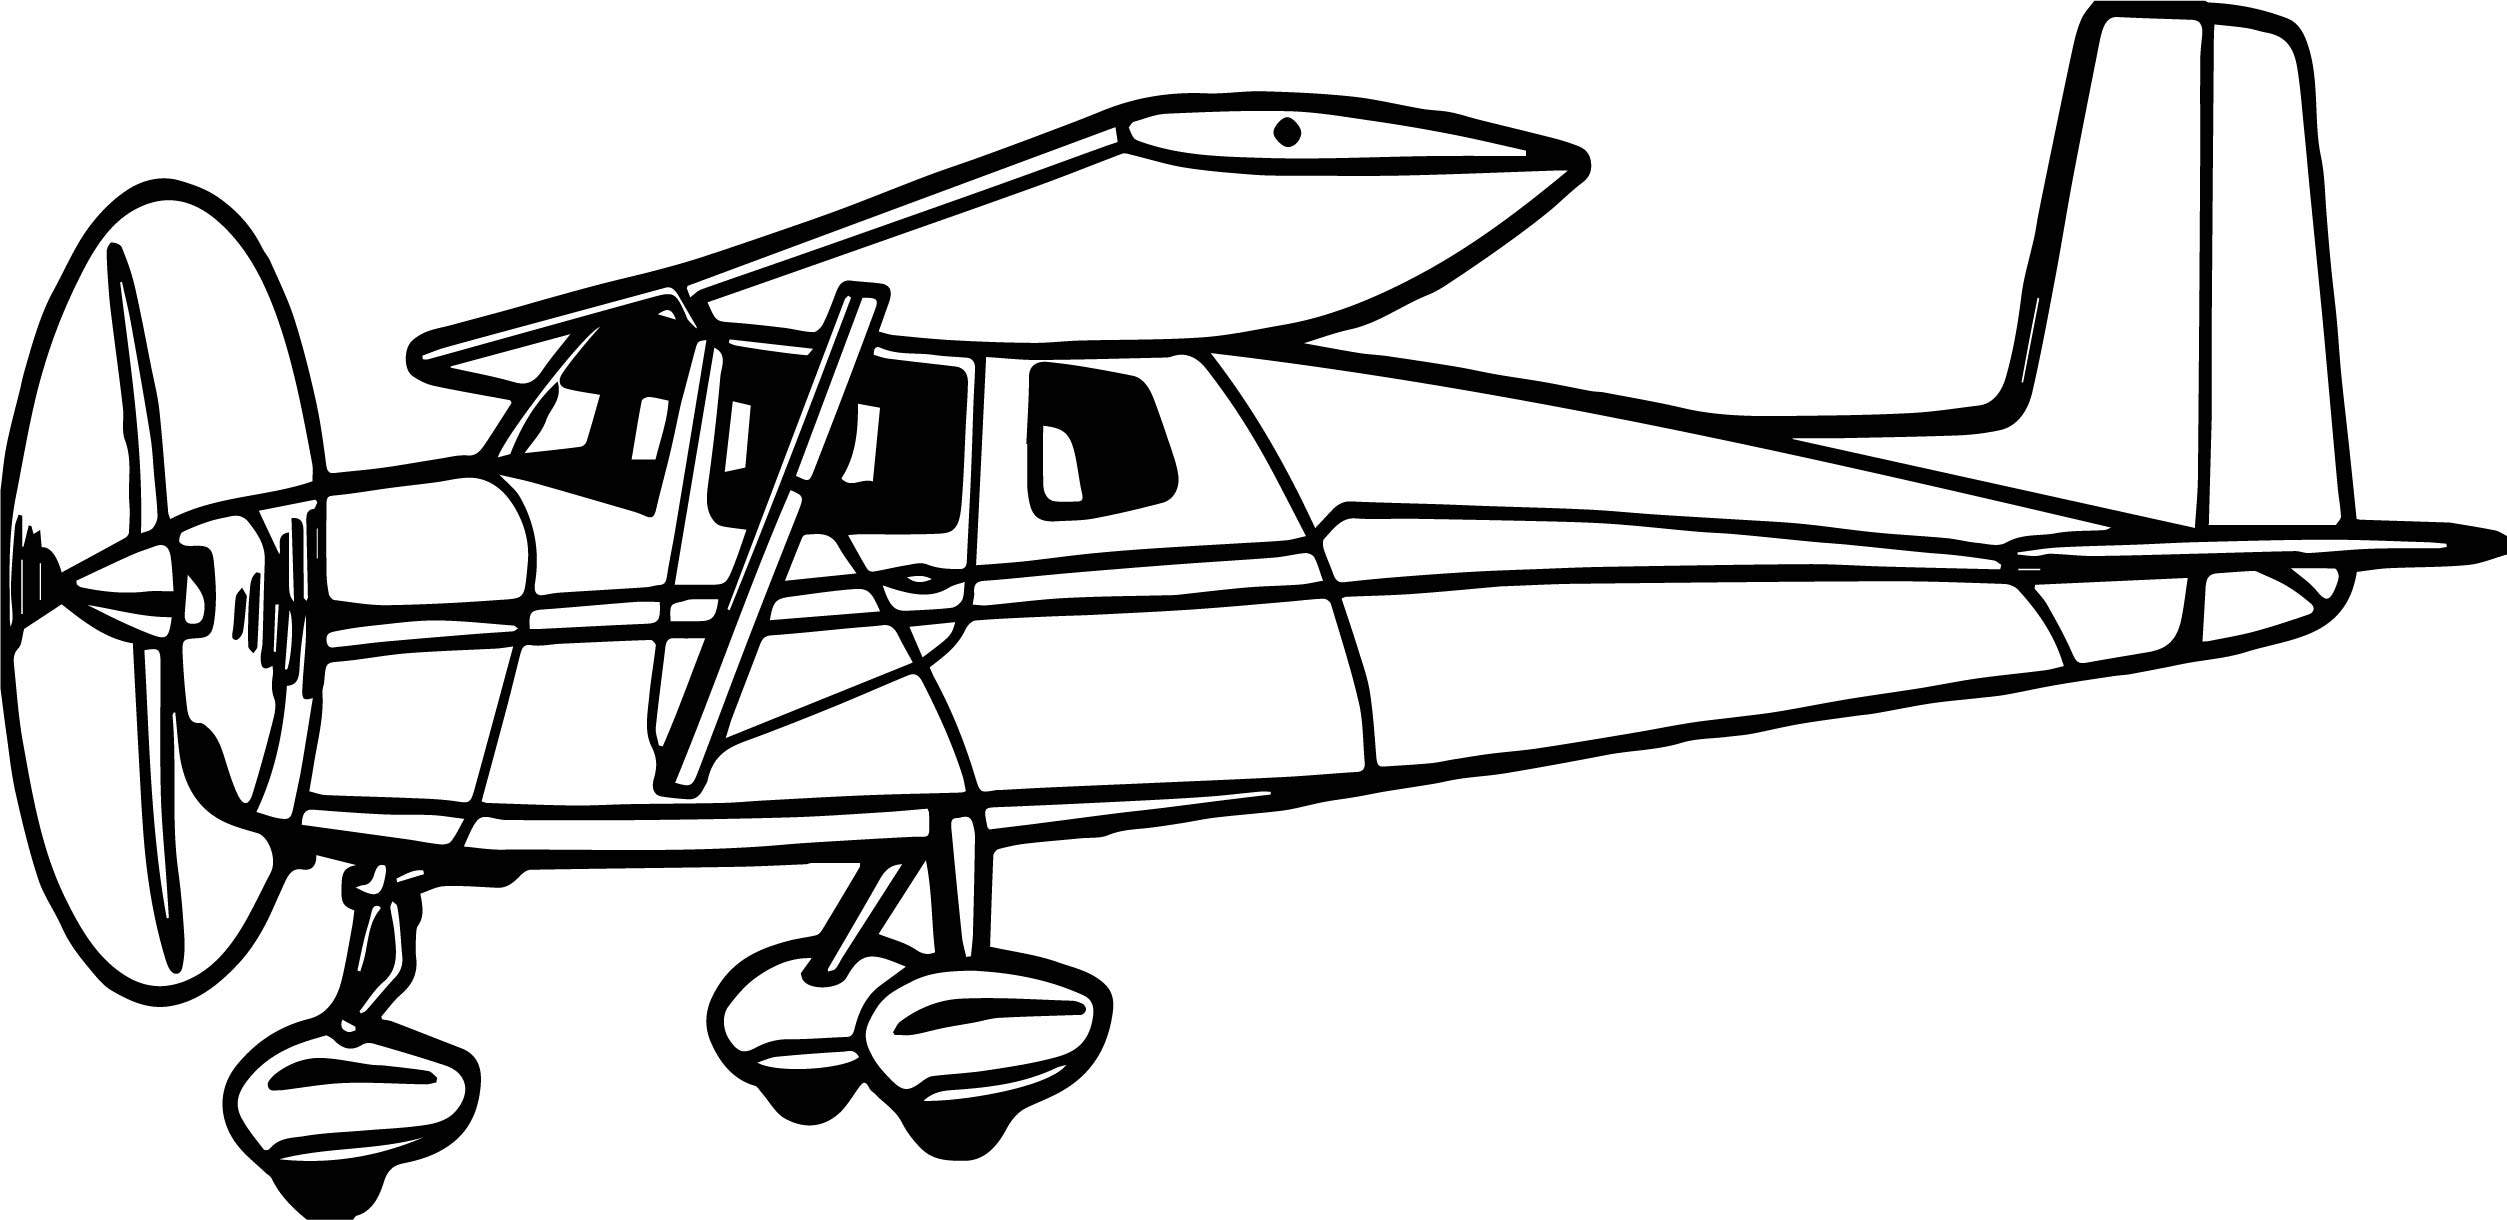 Illustration Of A Cessna Airplane Coloring Page Wecoloringpage